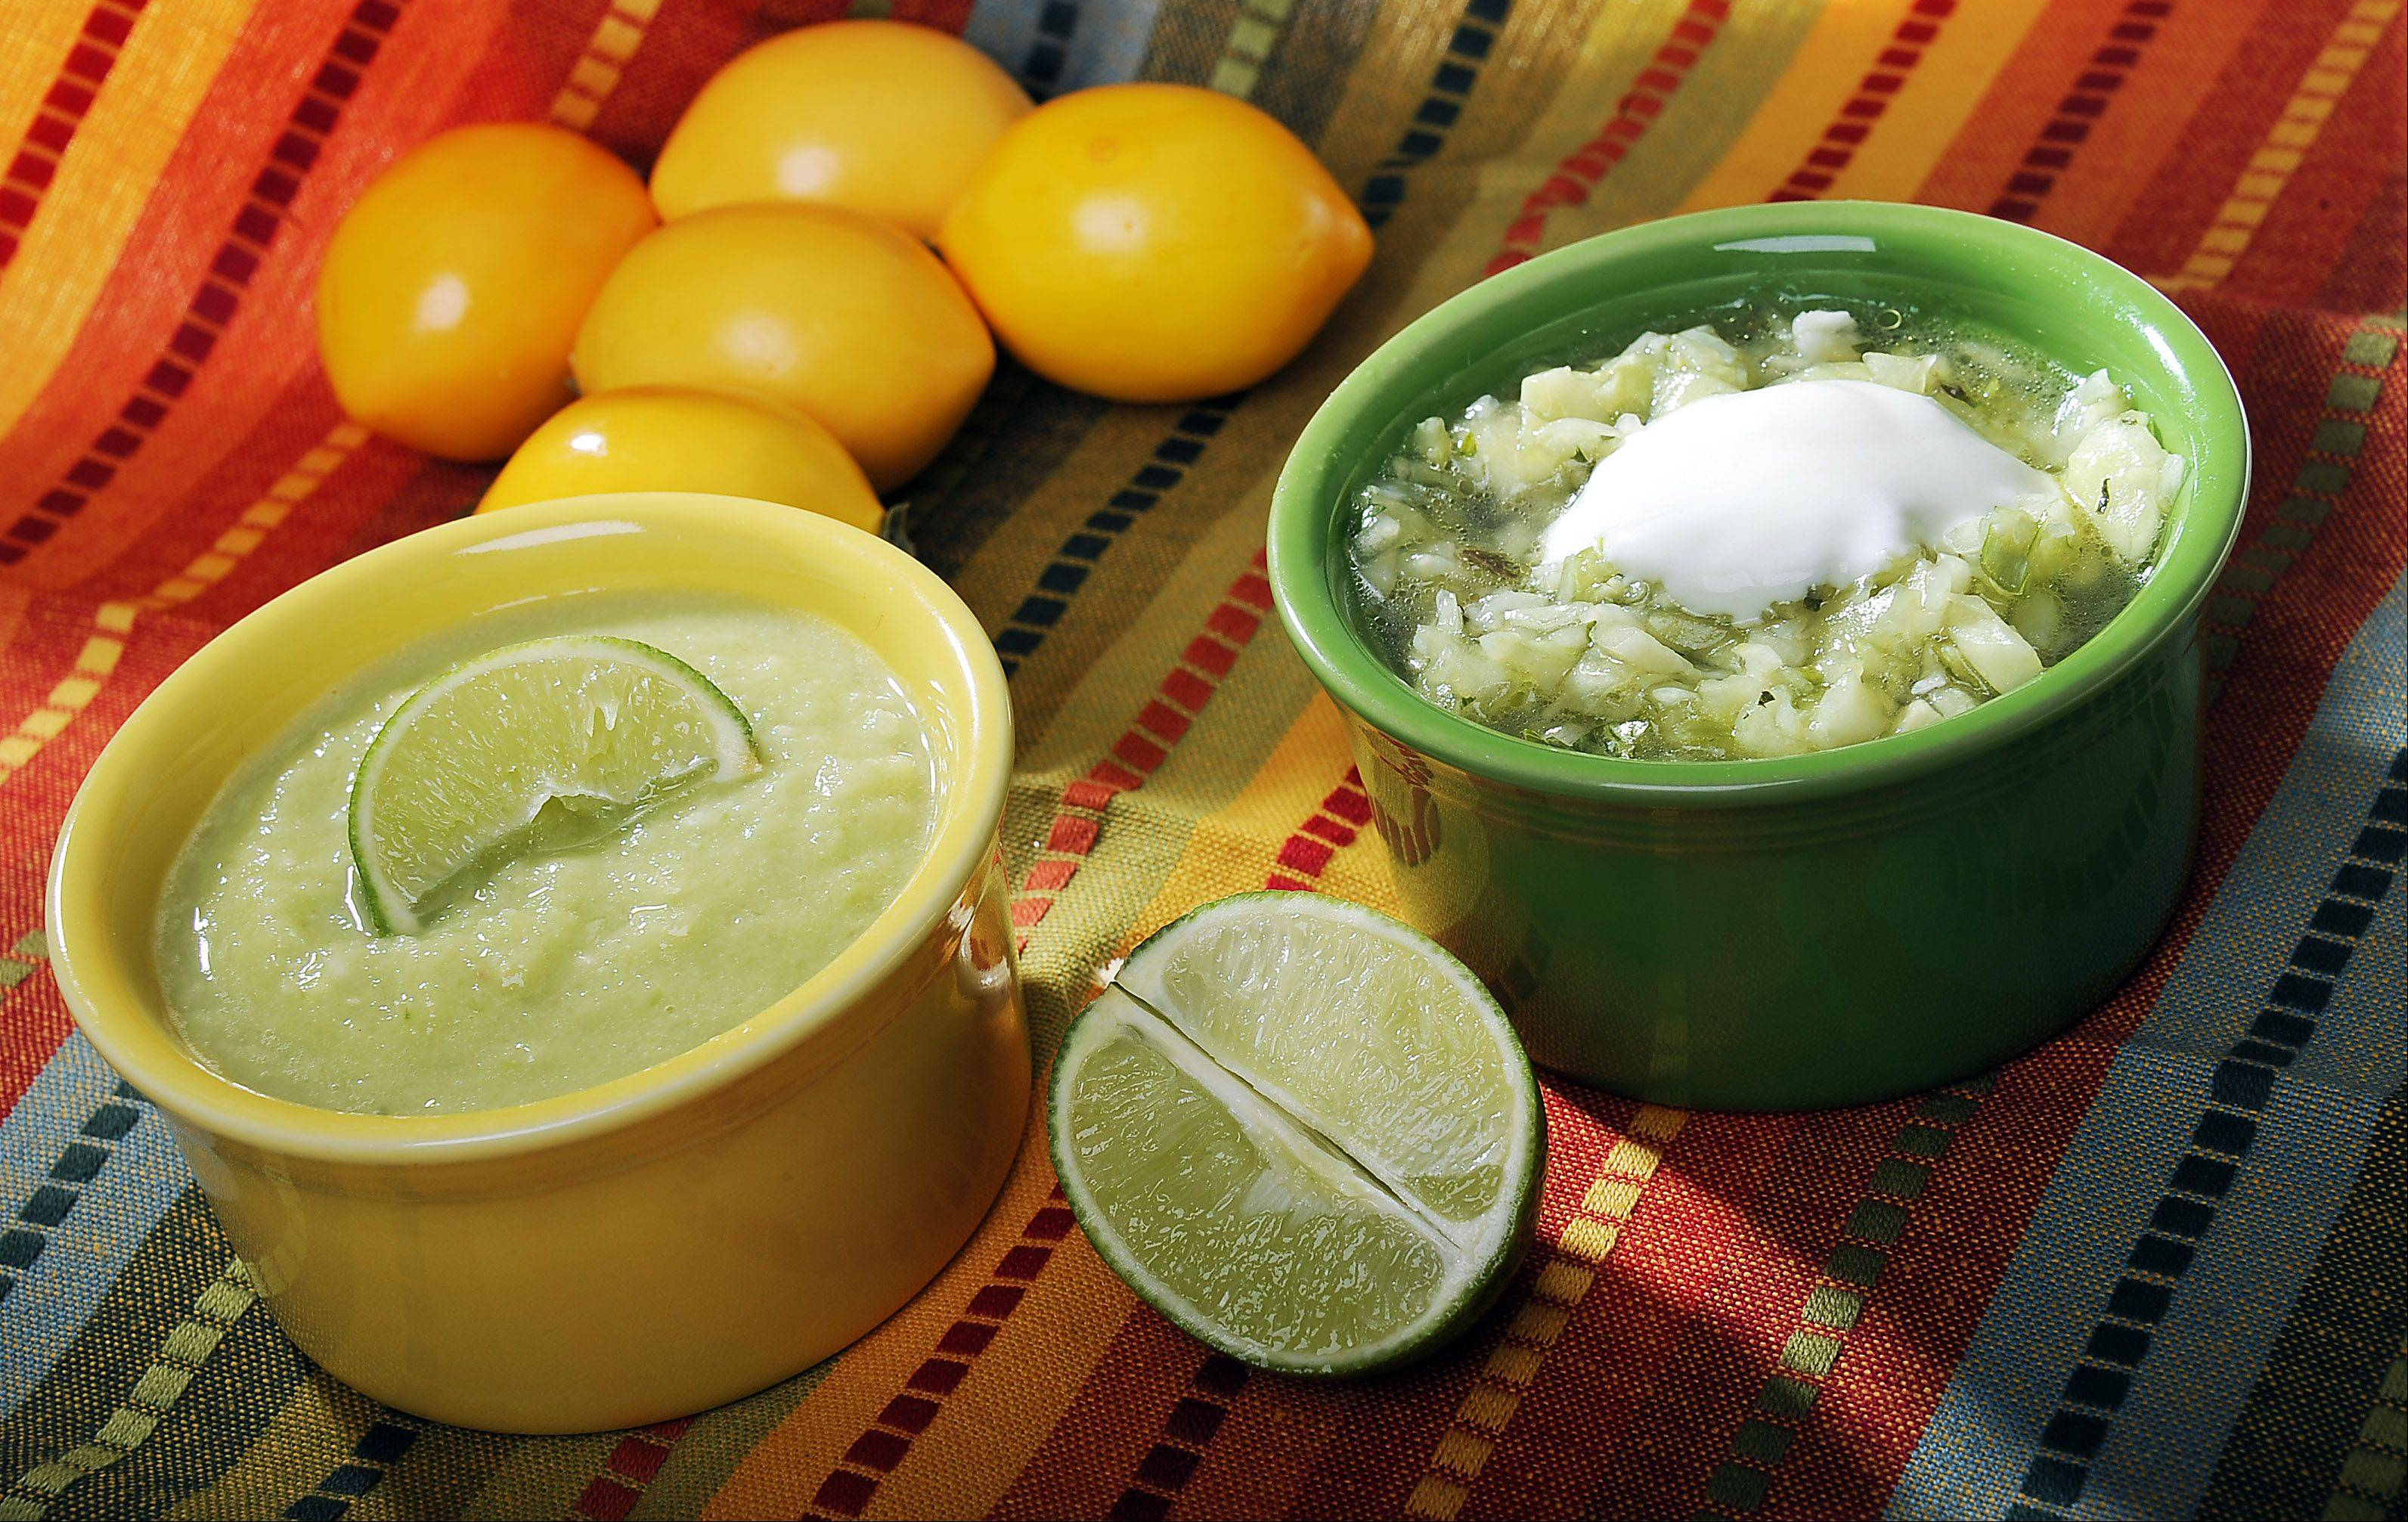 Cucumbers and honey dew melon mingle in a pair of similar chilled soups that are equally refreshing.